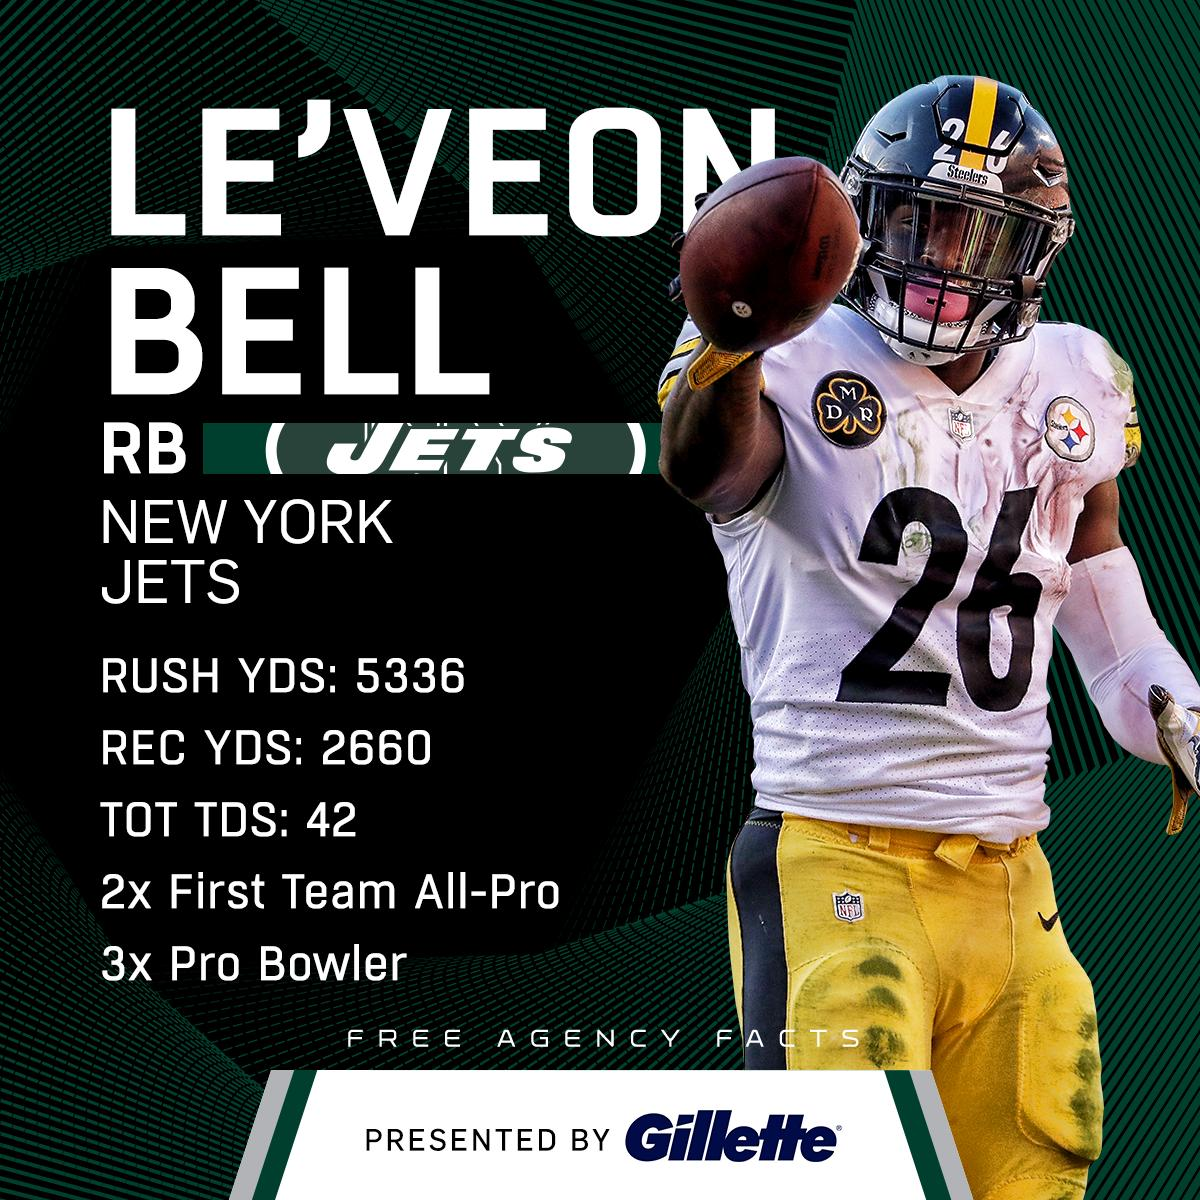 .@LeVeonBell takes his All-Pro talents to NYC ✈️  (by @Gillette) https://t.co/6l6fc4l2JJ